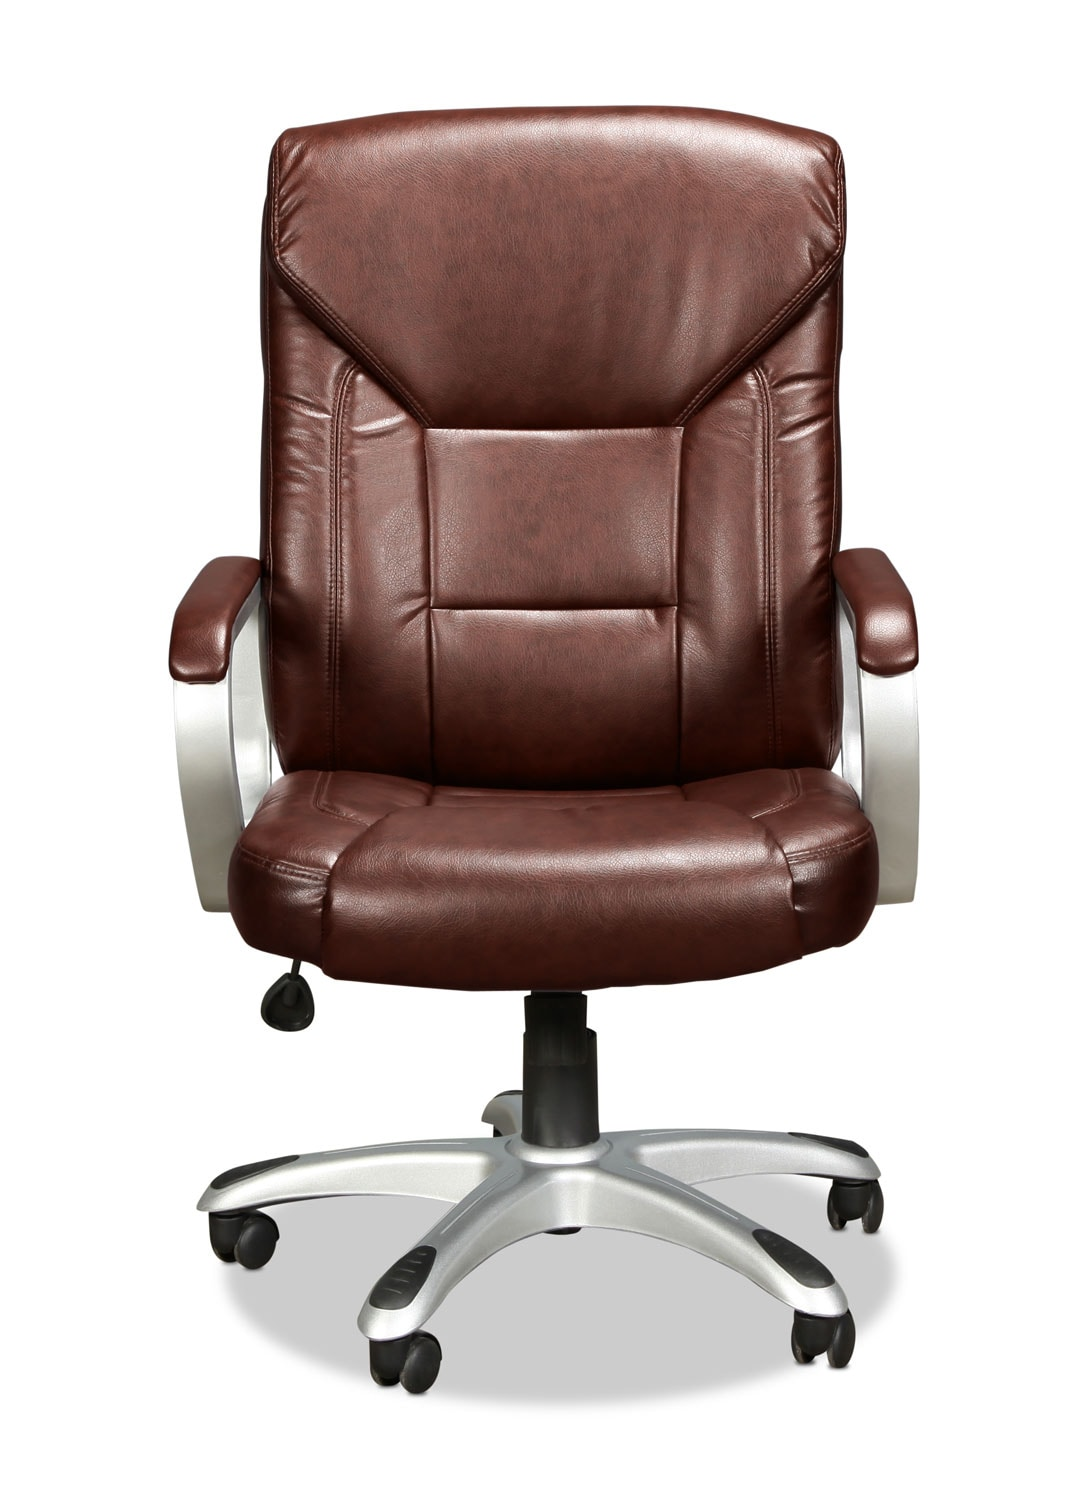 Home Office Furniture - Deluxe Executive Desk Chair